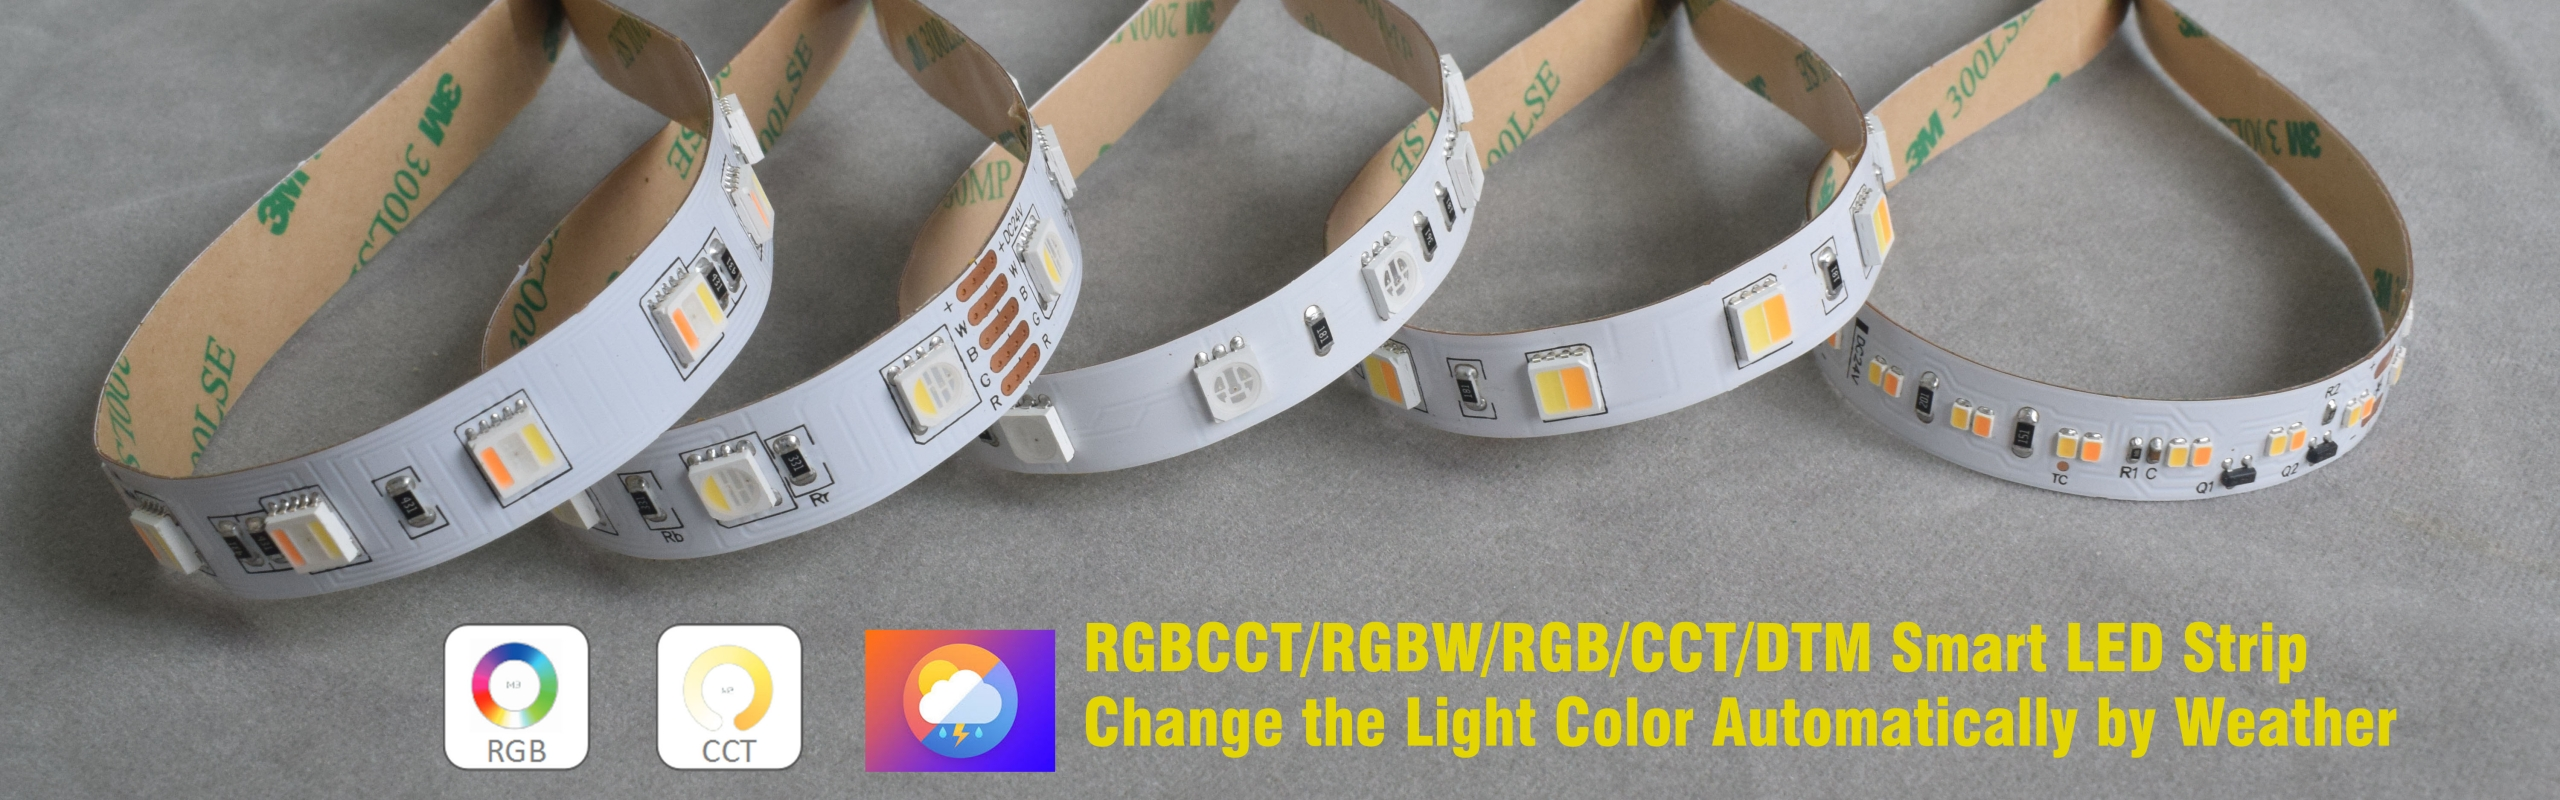 RGBCCT RGBW RGB CCT DTW LED STRIP SMART LED STRIP scaled